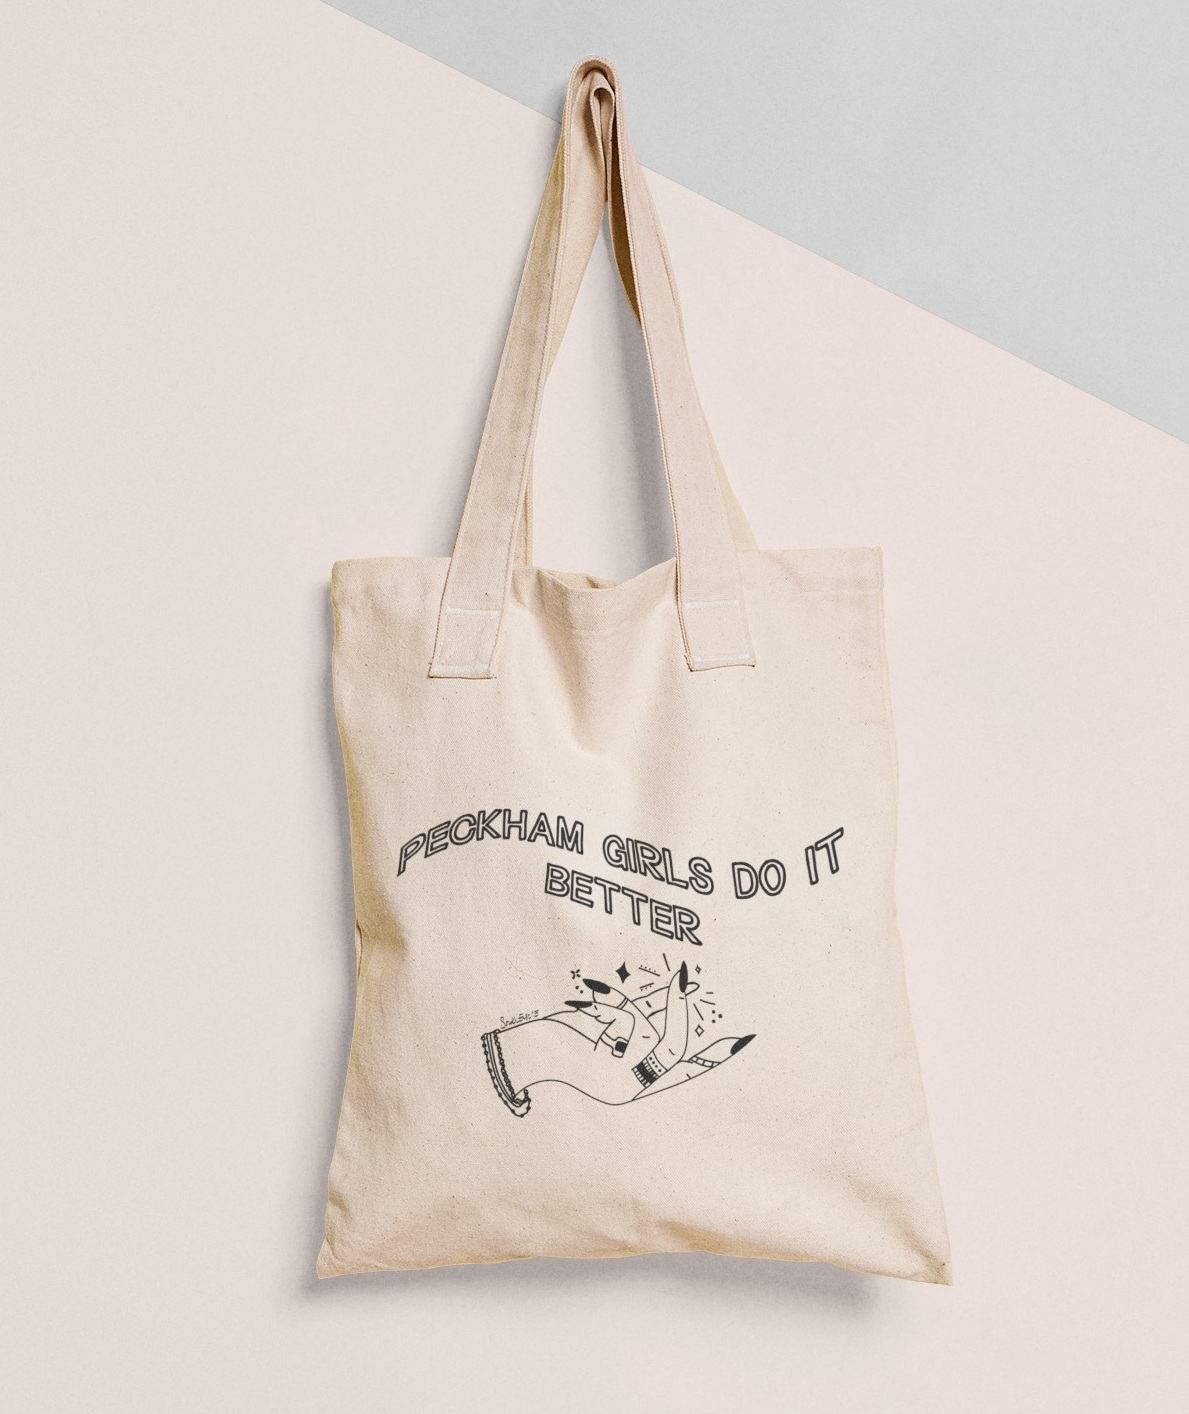 Peckham Girls Tote bag - £12.99 -